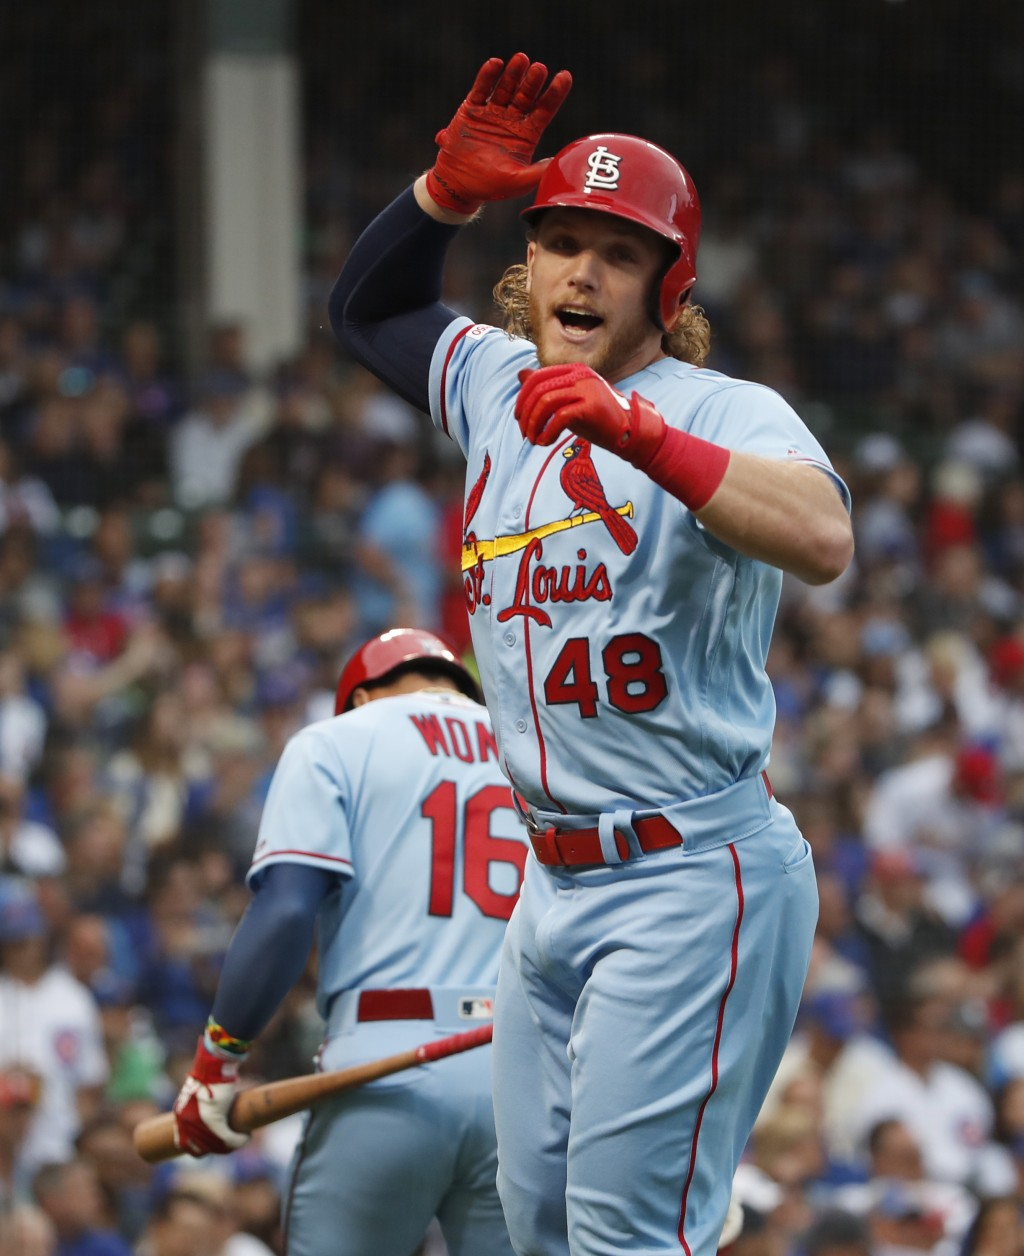 St. Louis Cardinals' Harrison Bader celebrates after hitting a solo home run against the Chicago Cubs during the first inning of a baseball game Satur...